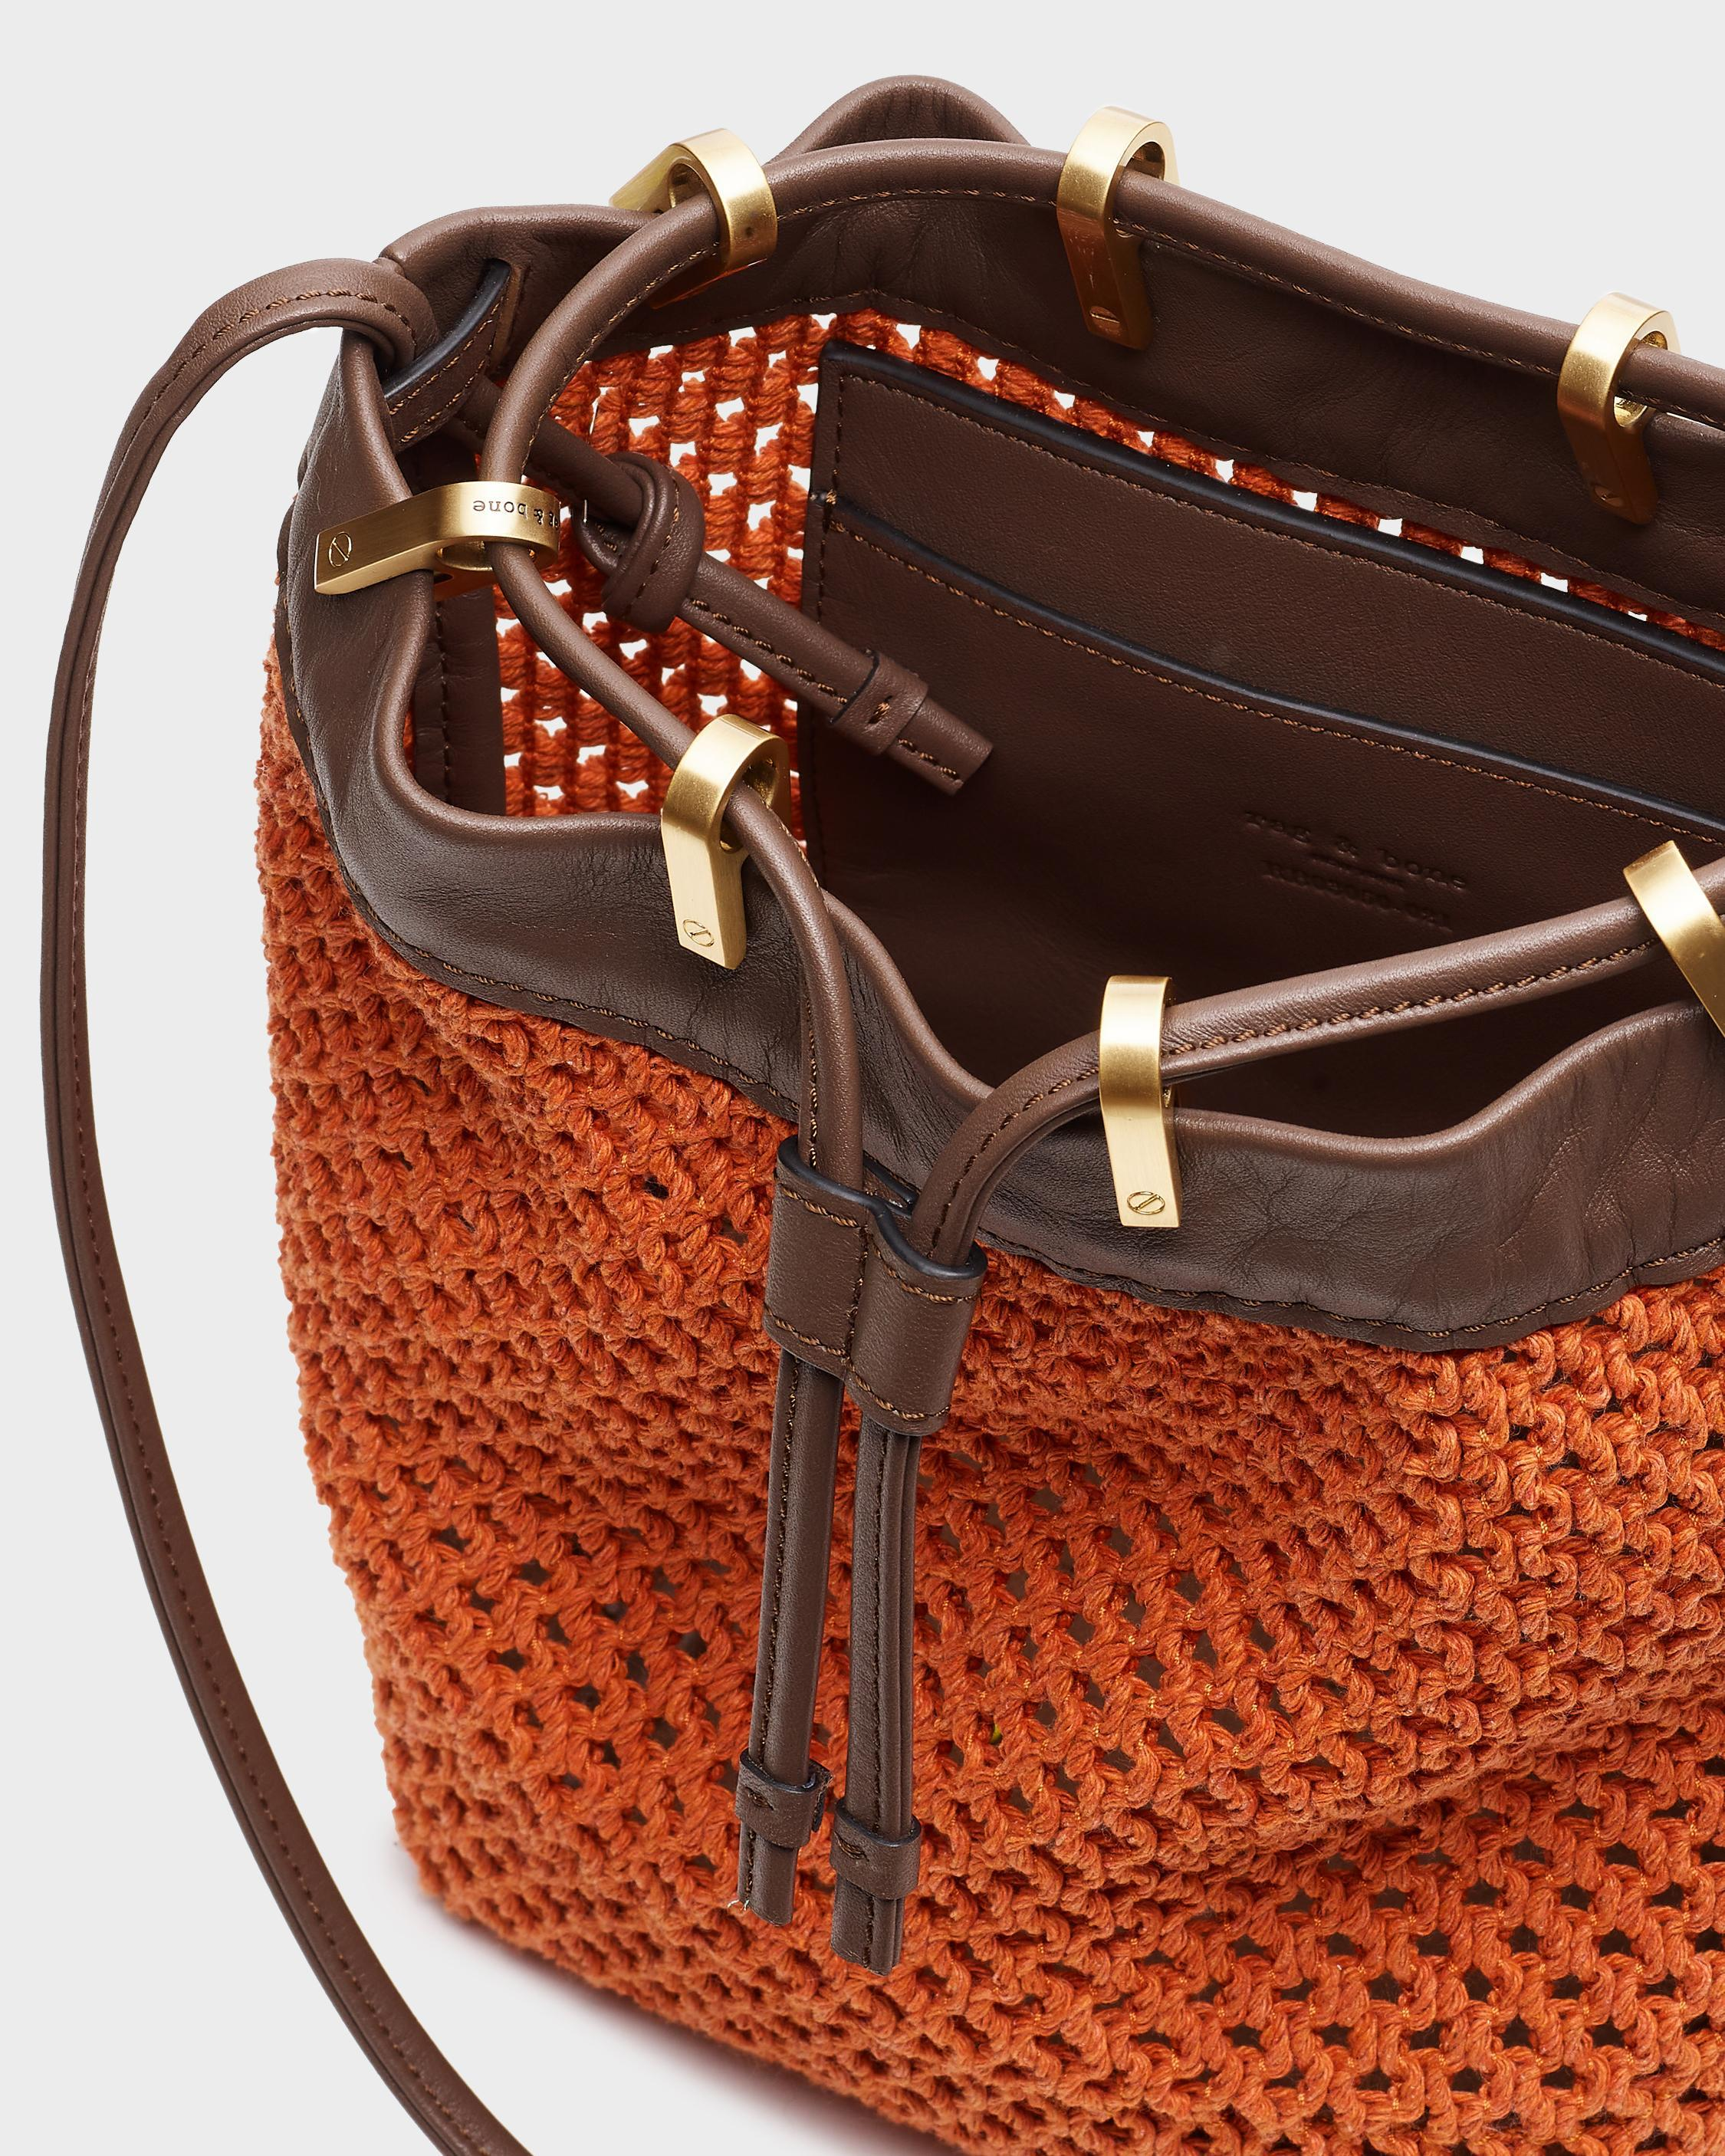 Summer dayton drawstring bag - leather and recycled materials 2